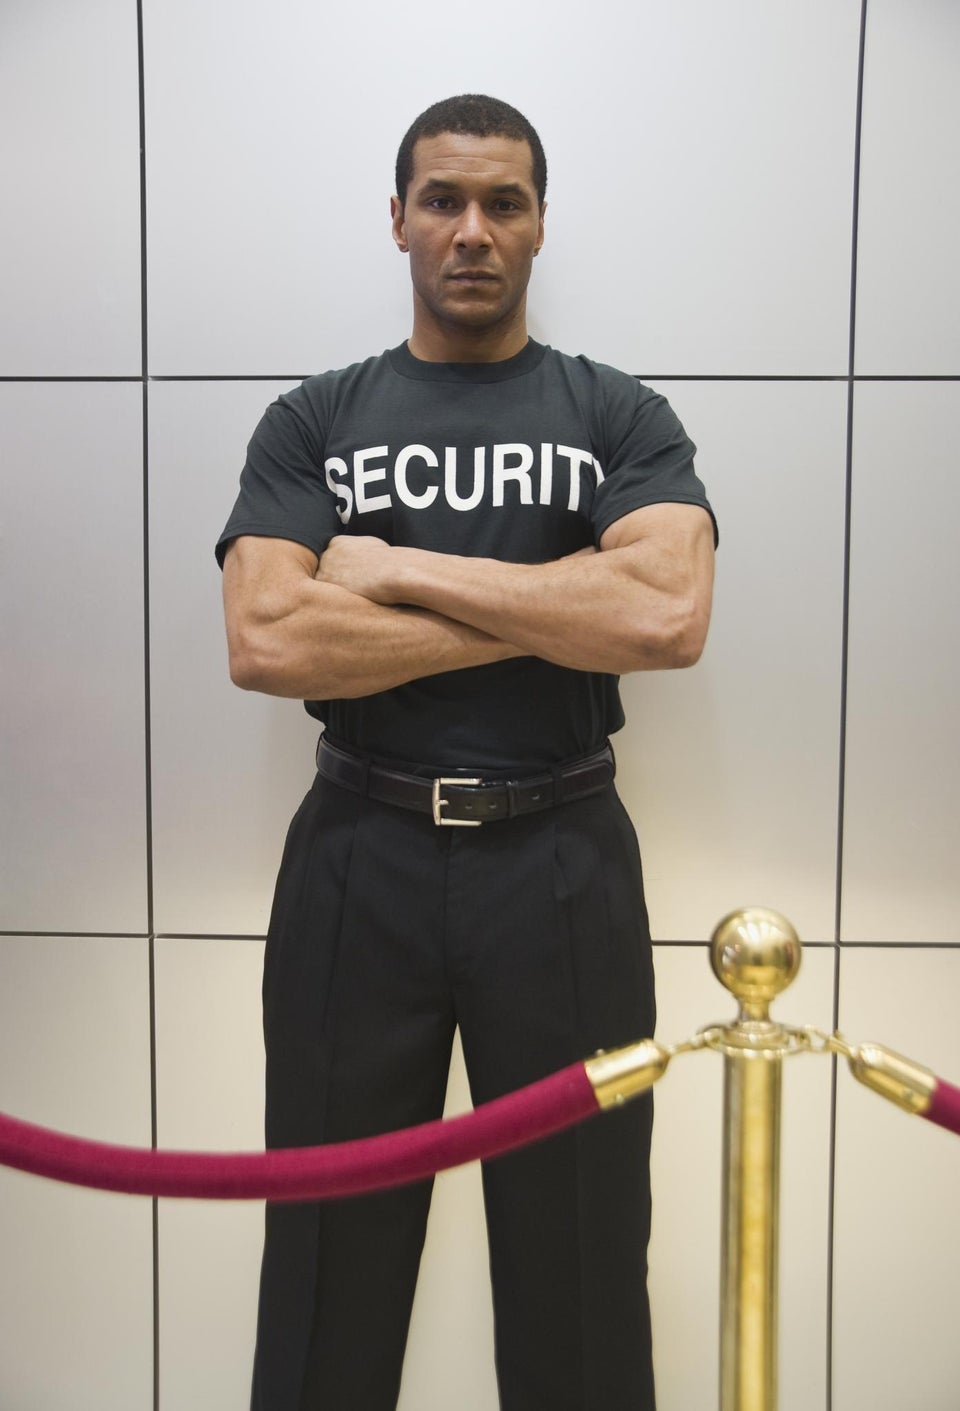 ESSENCE Poll: Do You Think Movie Theaters Need Security Checks?